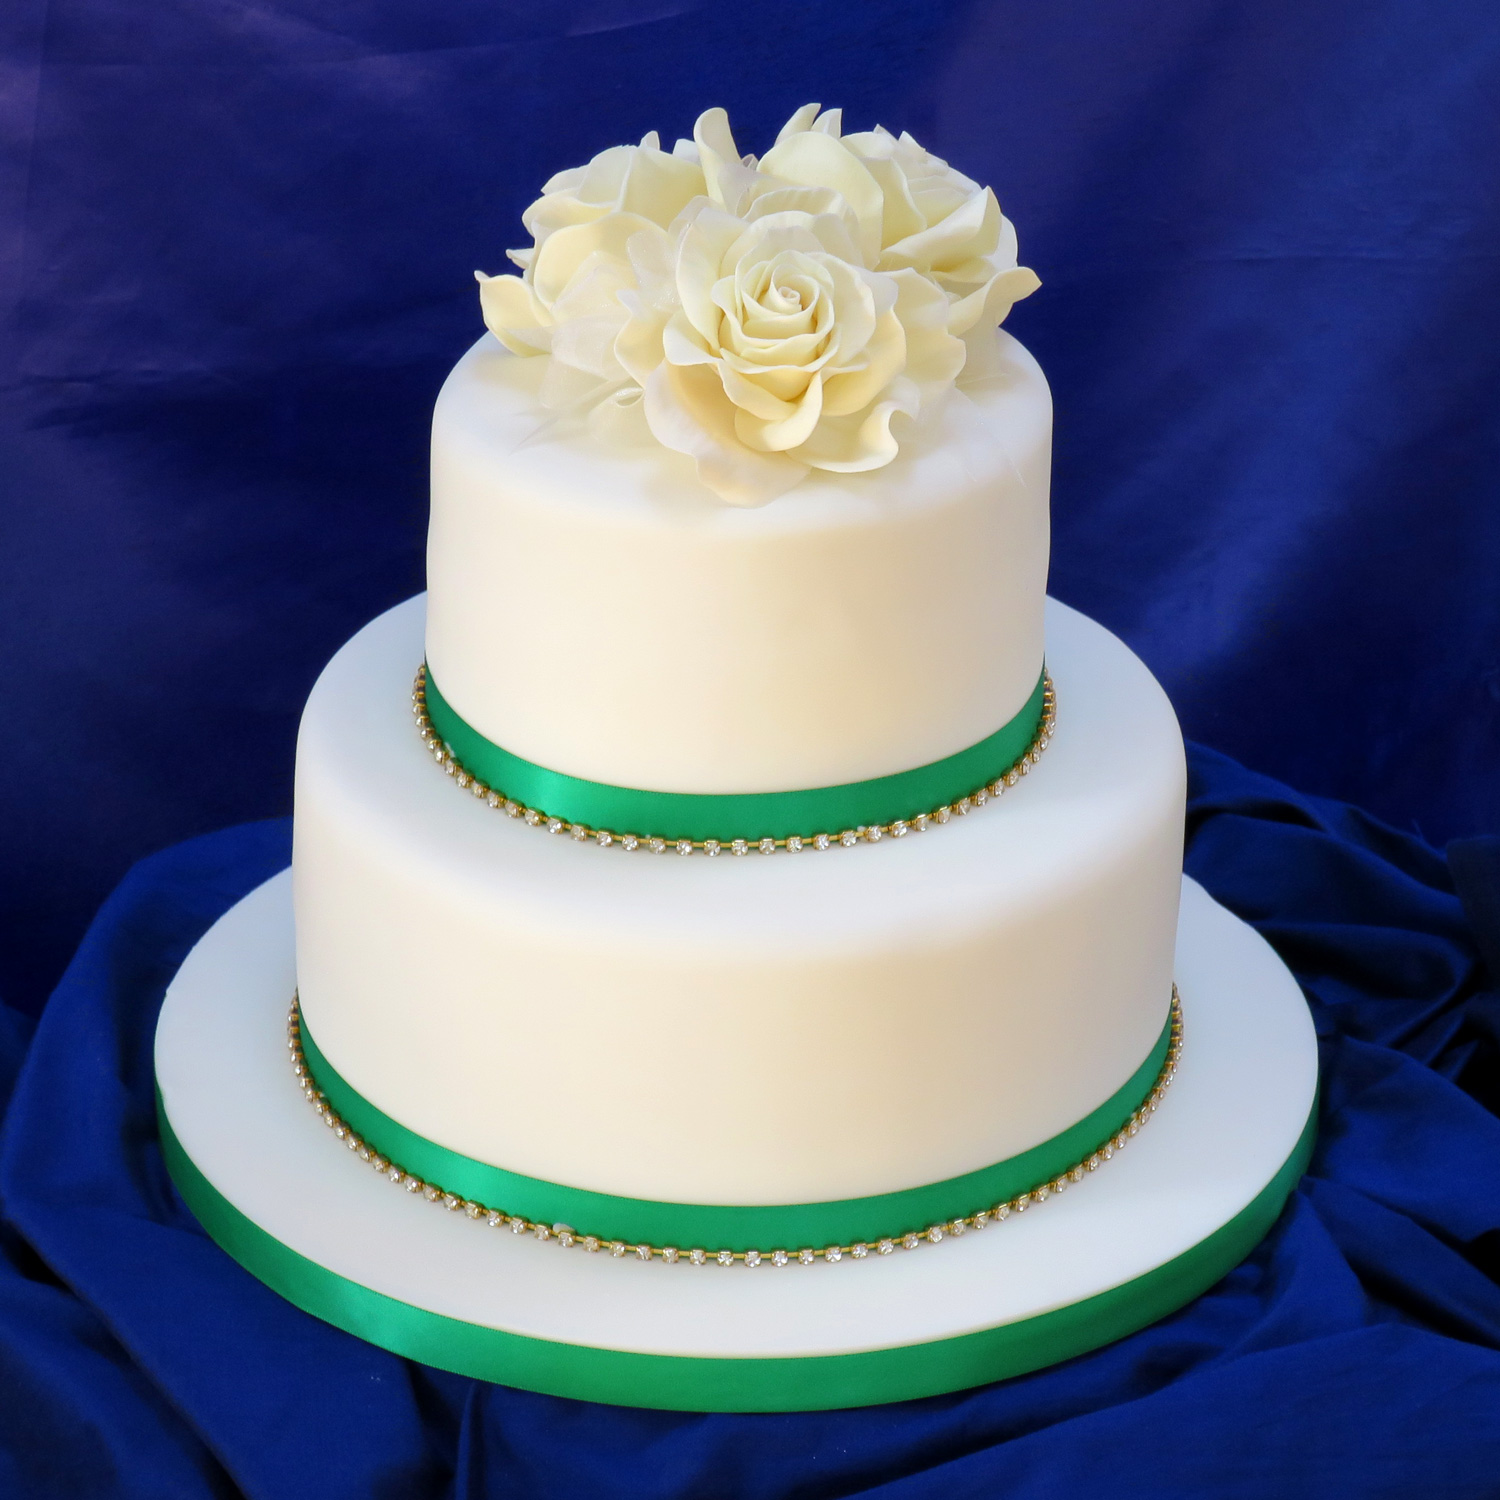 Giant Ivory Rose Cake Topper